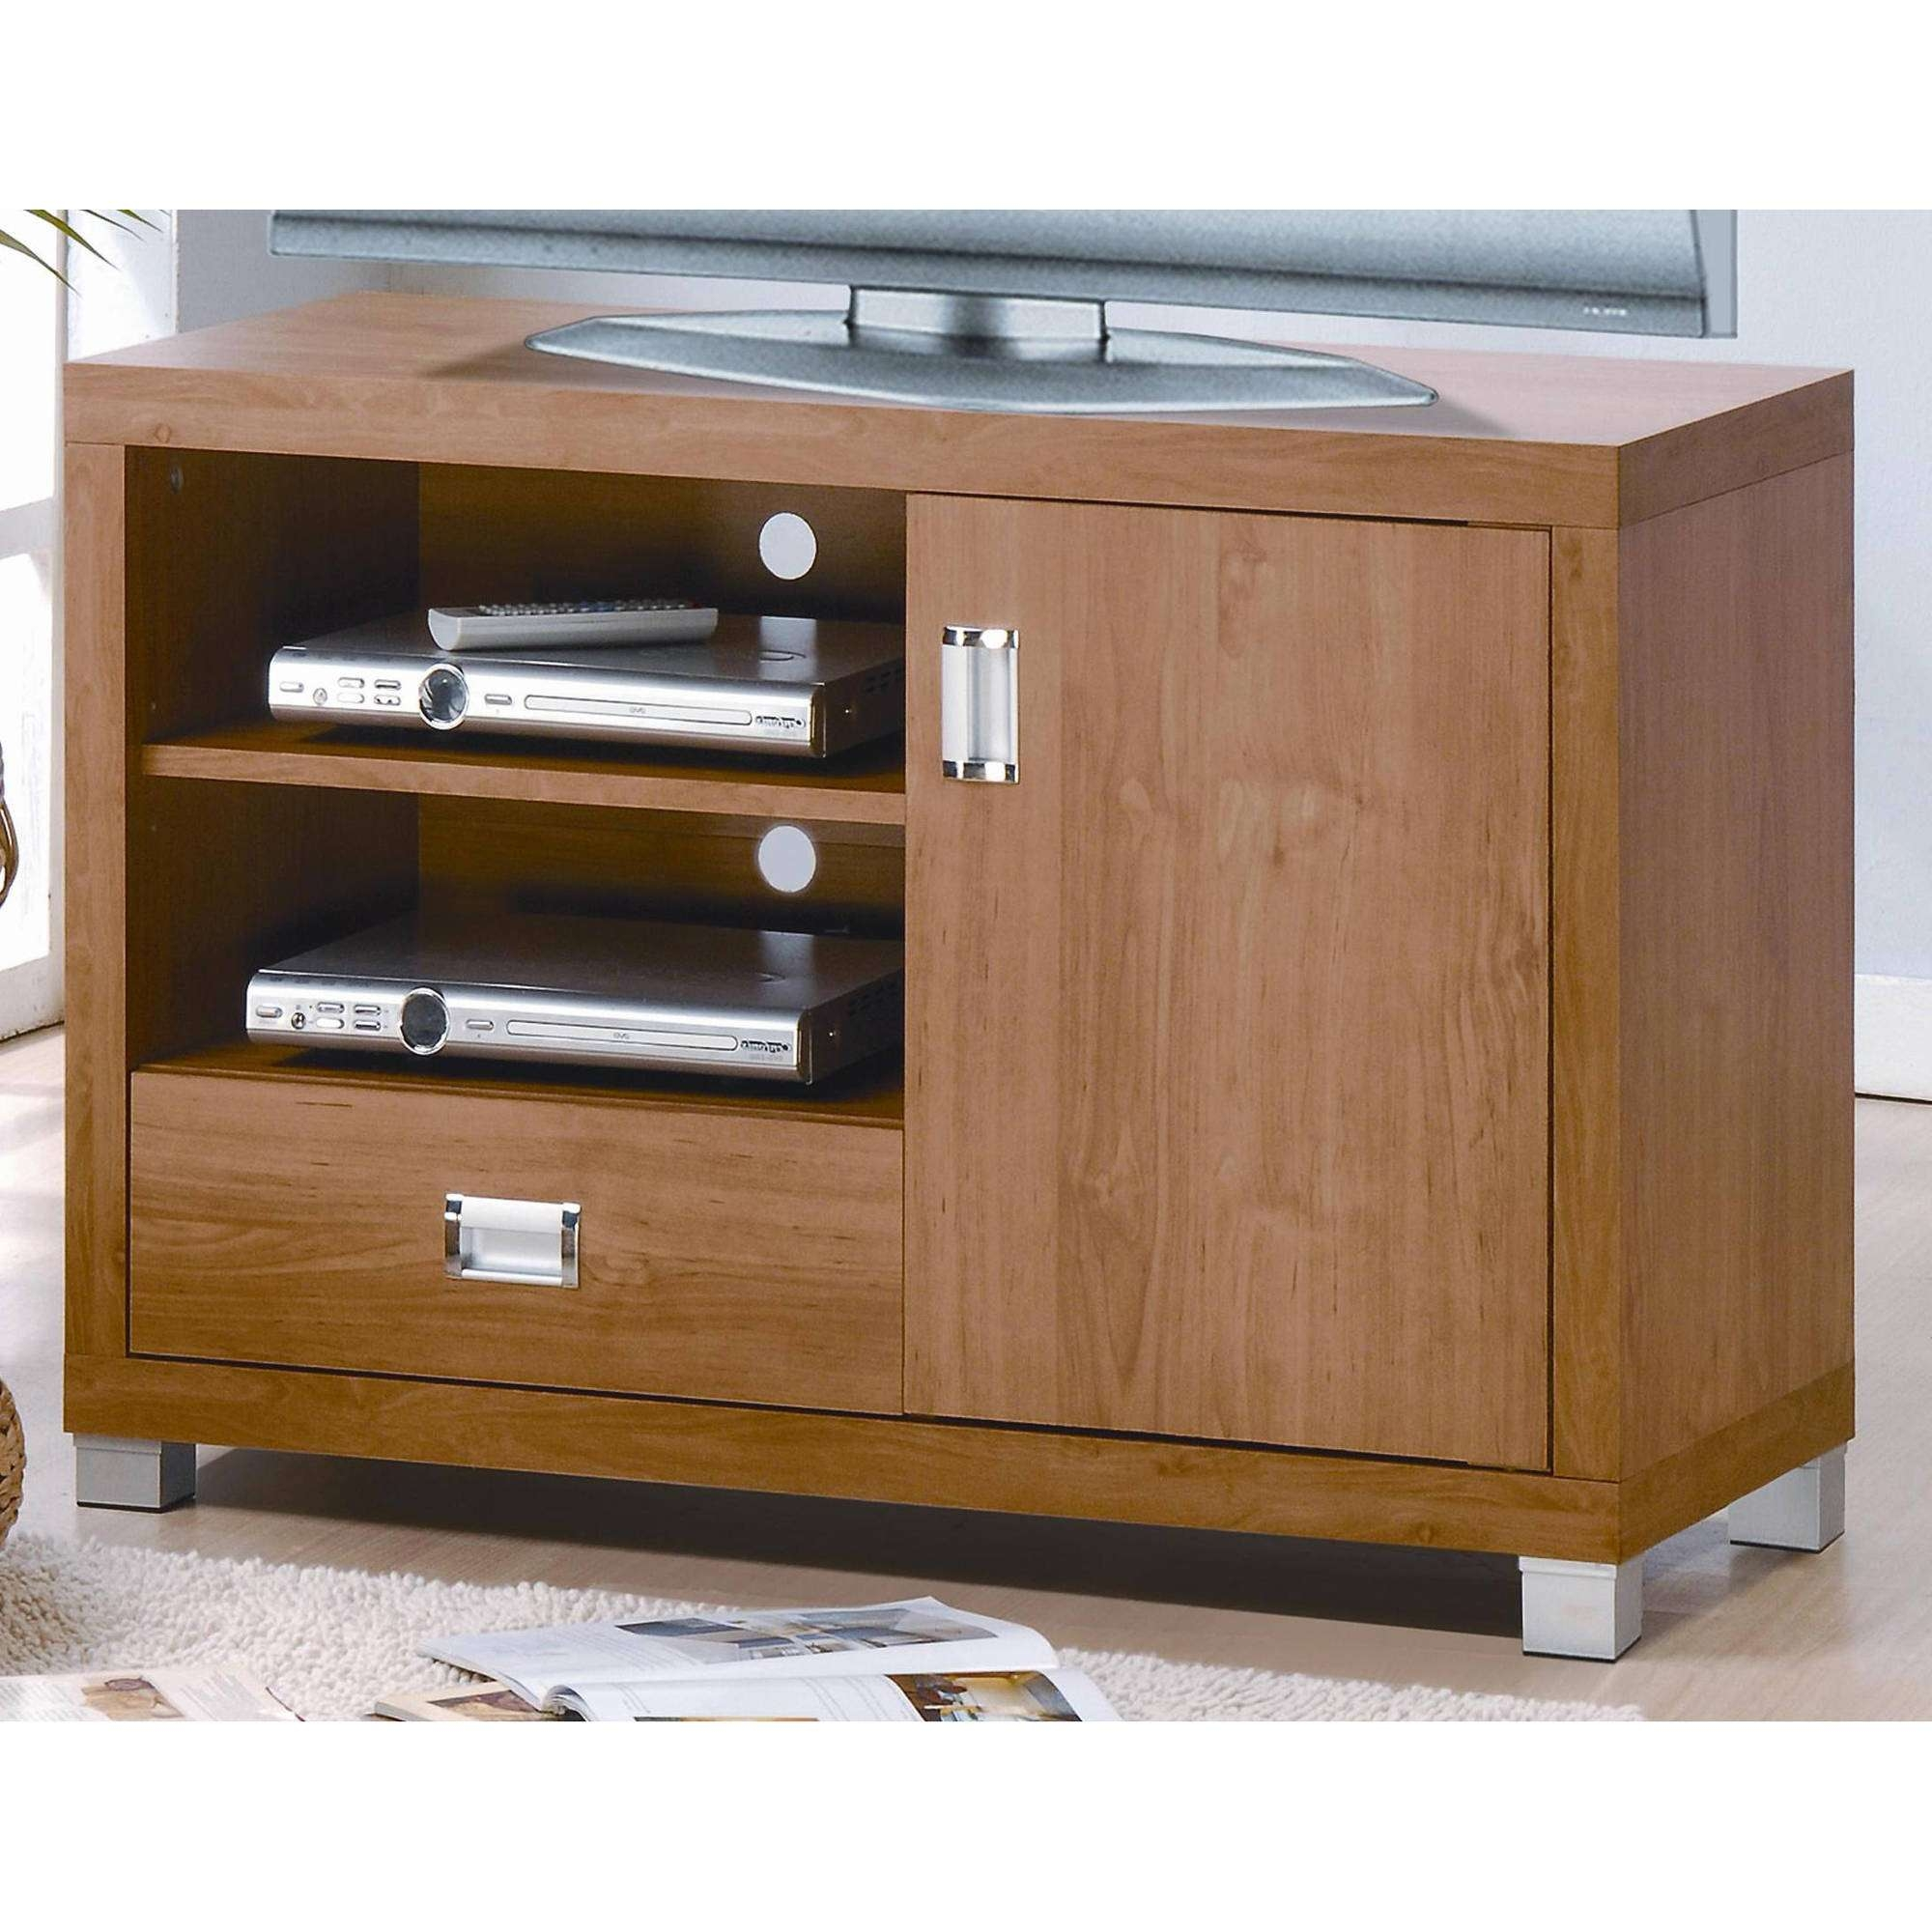 Techni Mobili Tv Cabinet, Maple – Walmart Intended For Maple Tv Cabinets (View 6 of 20)